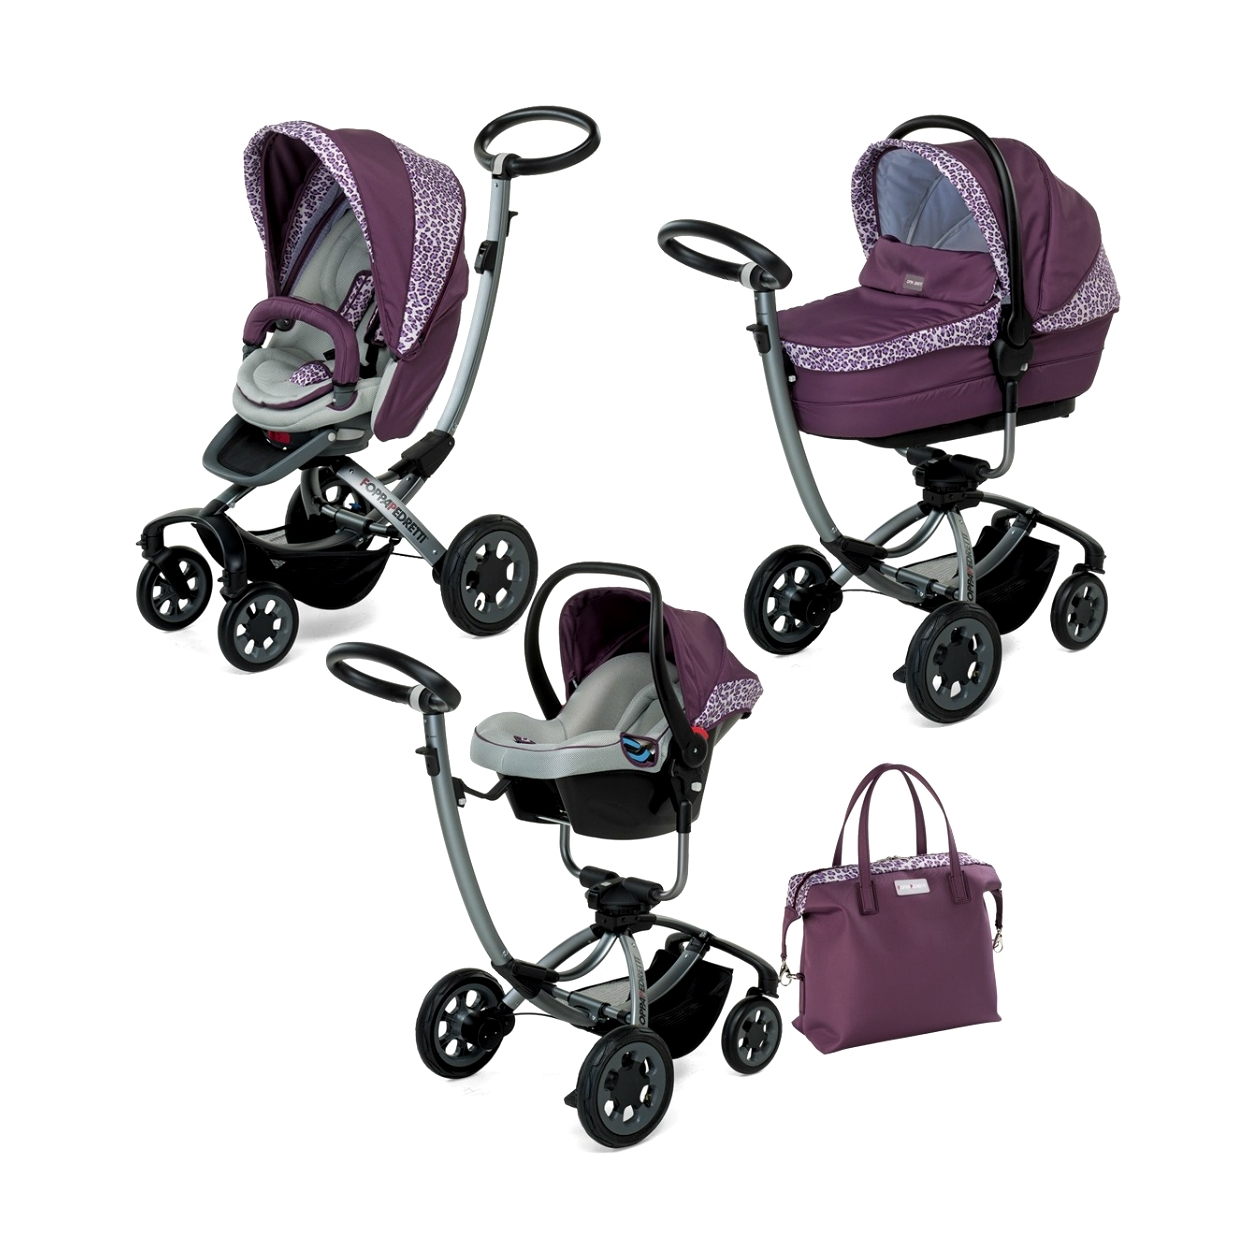 ������� 3 � 1 Foppapedretti Myo Travel System VioletGungle